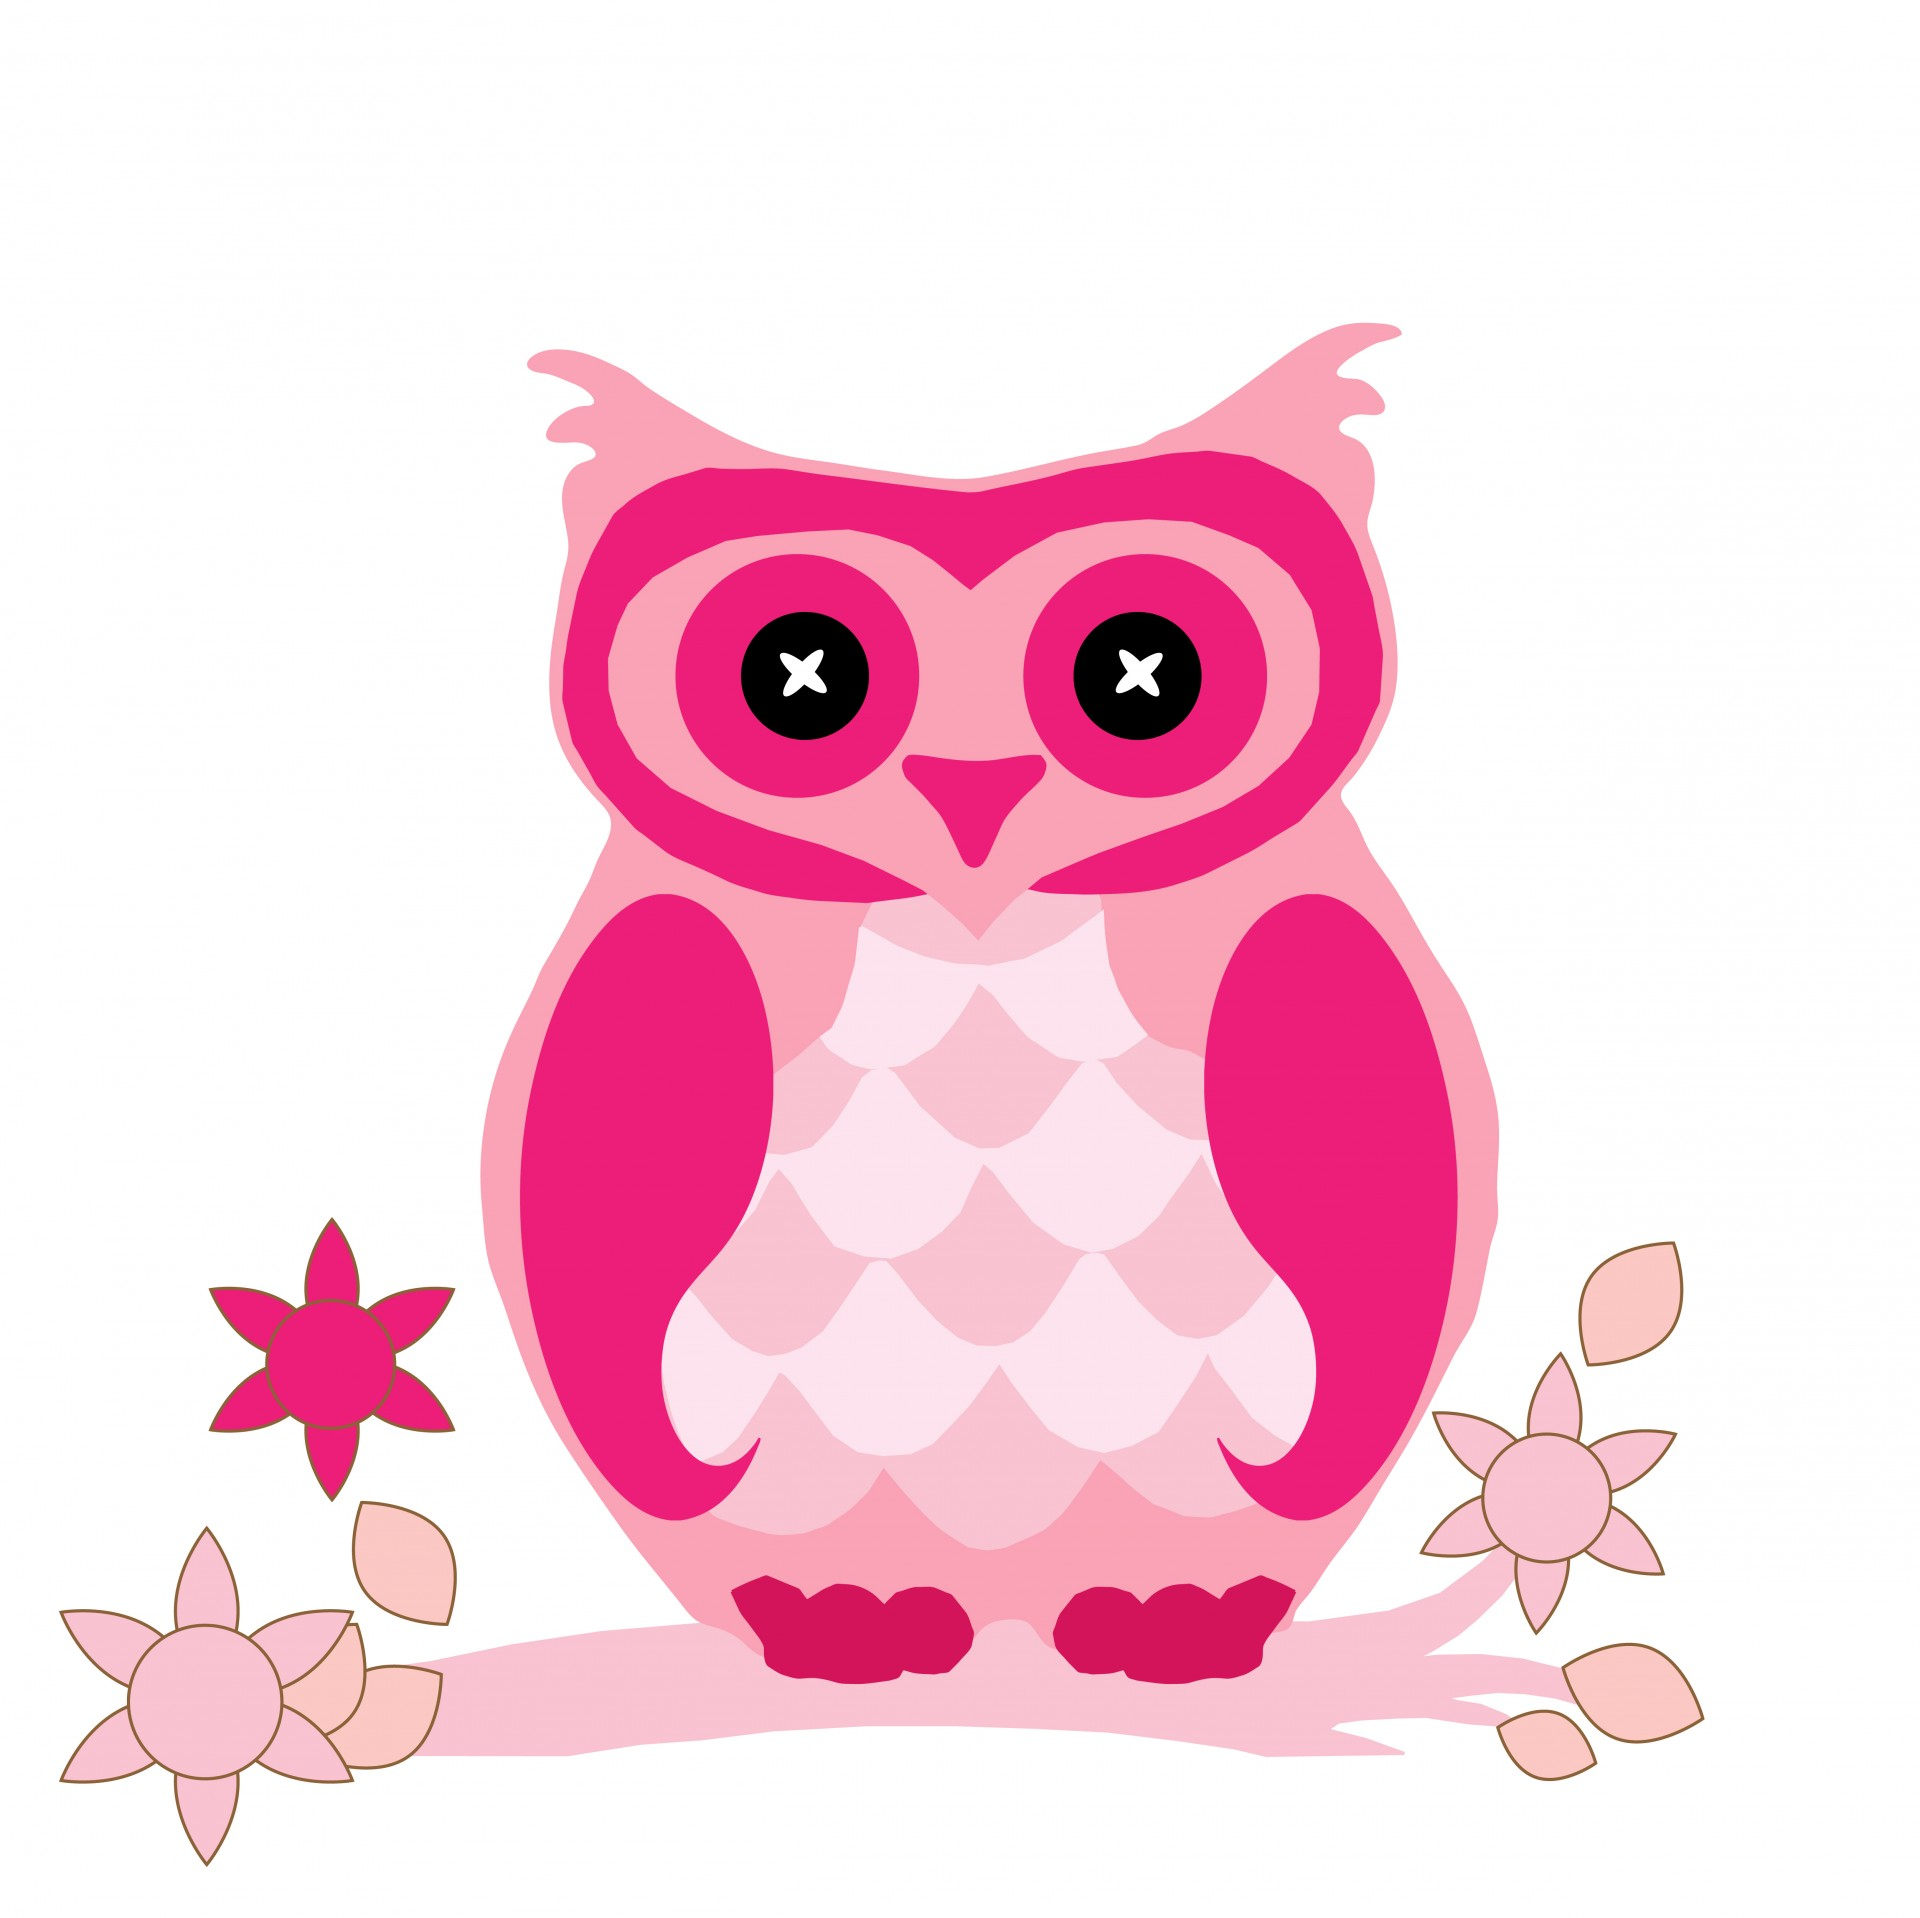 Owl Clipart Cute Pink Free Stock Photo Hd   Public Domain Pictures